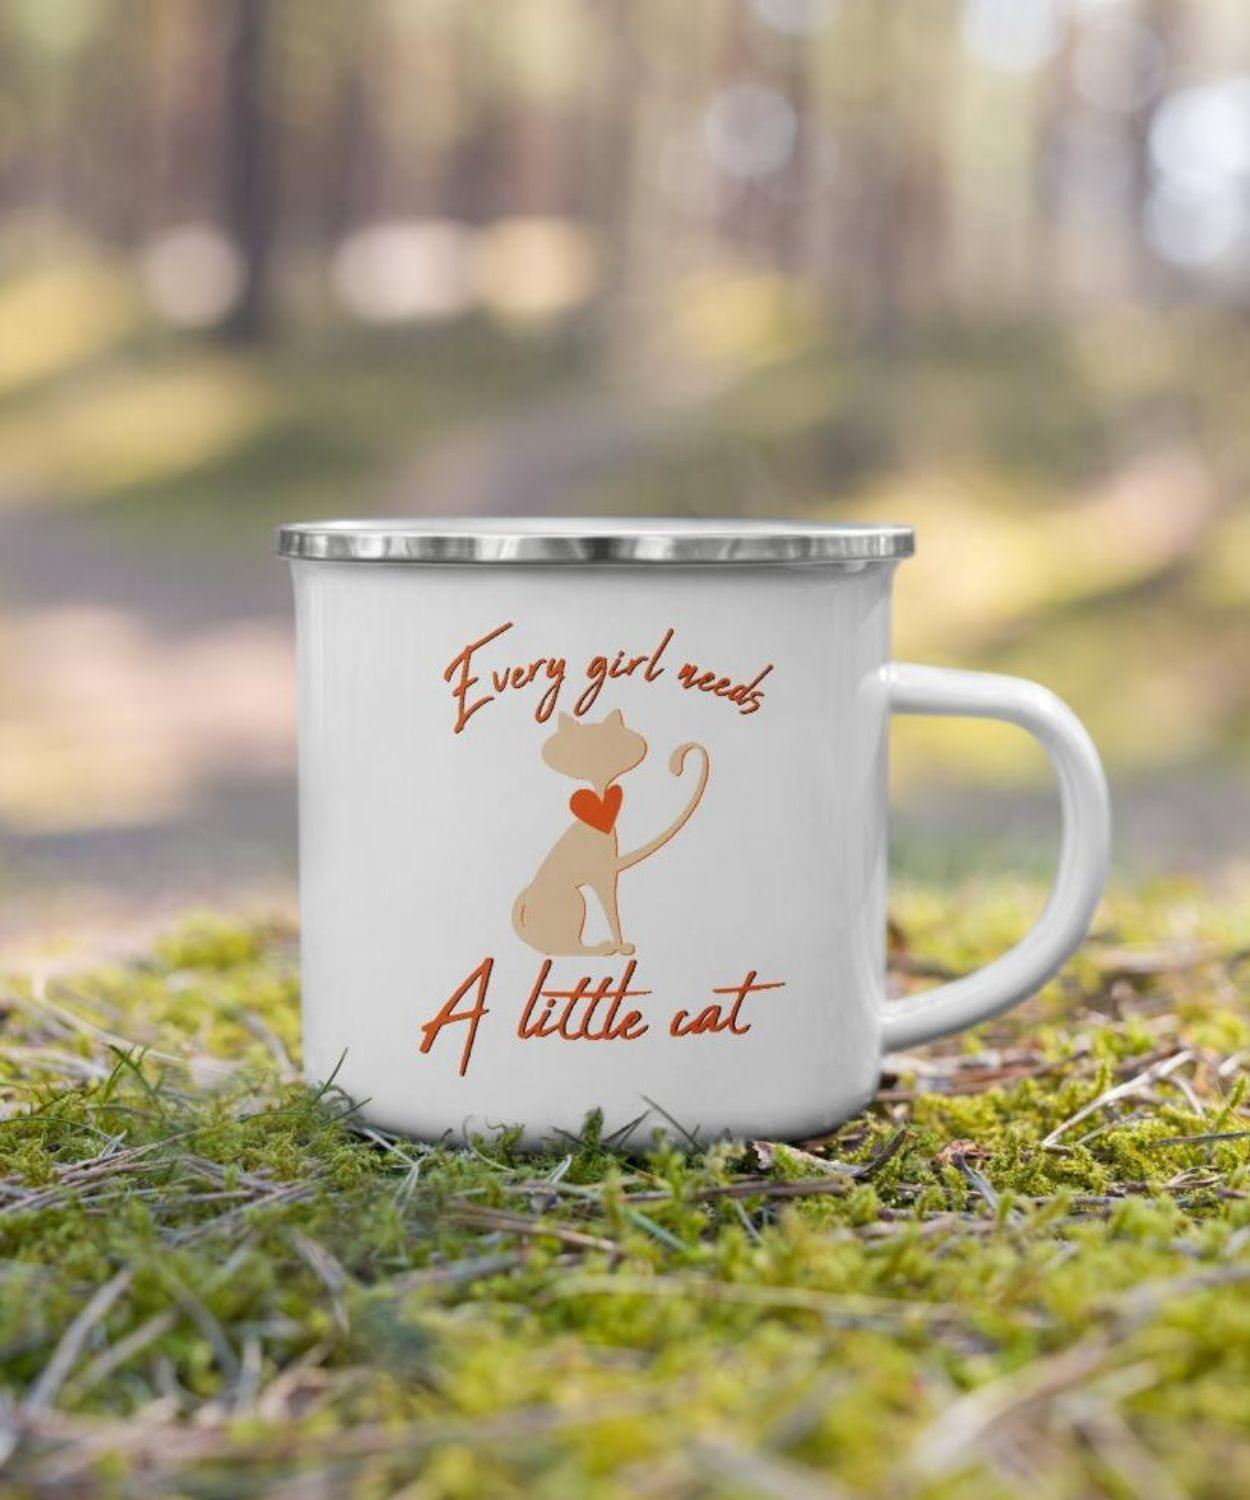 Every girl needs a little cat | Enamel Coffee & Tea Mug